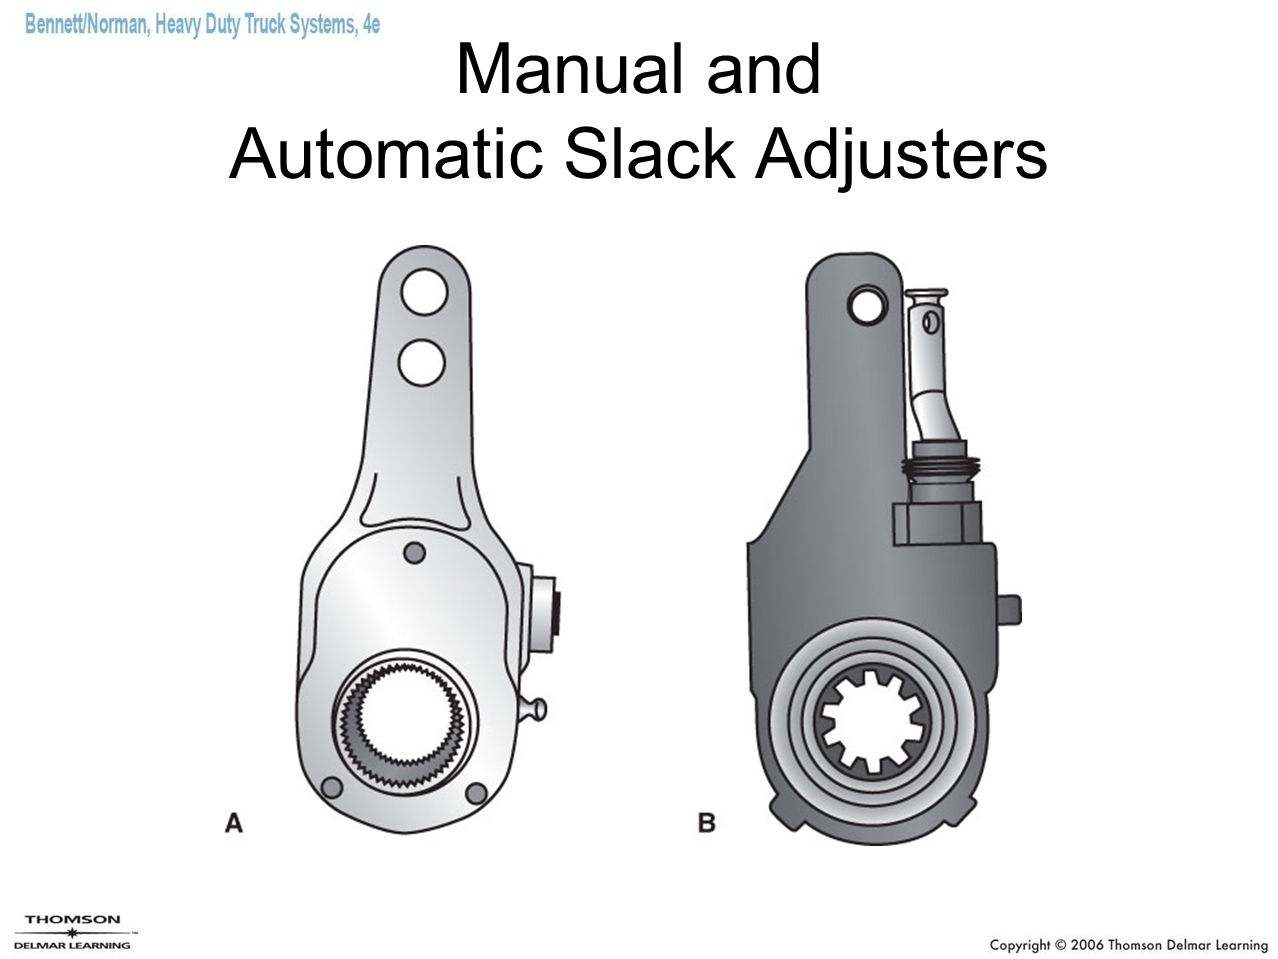 Manual and Automatic Slack Adjusters